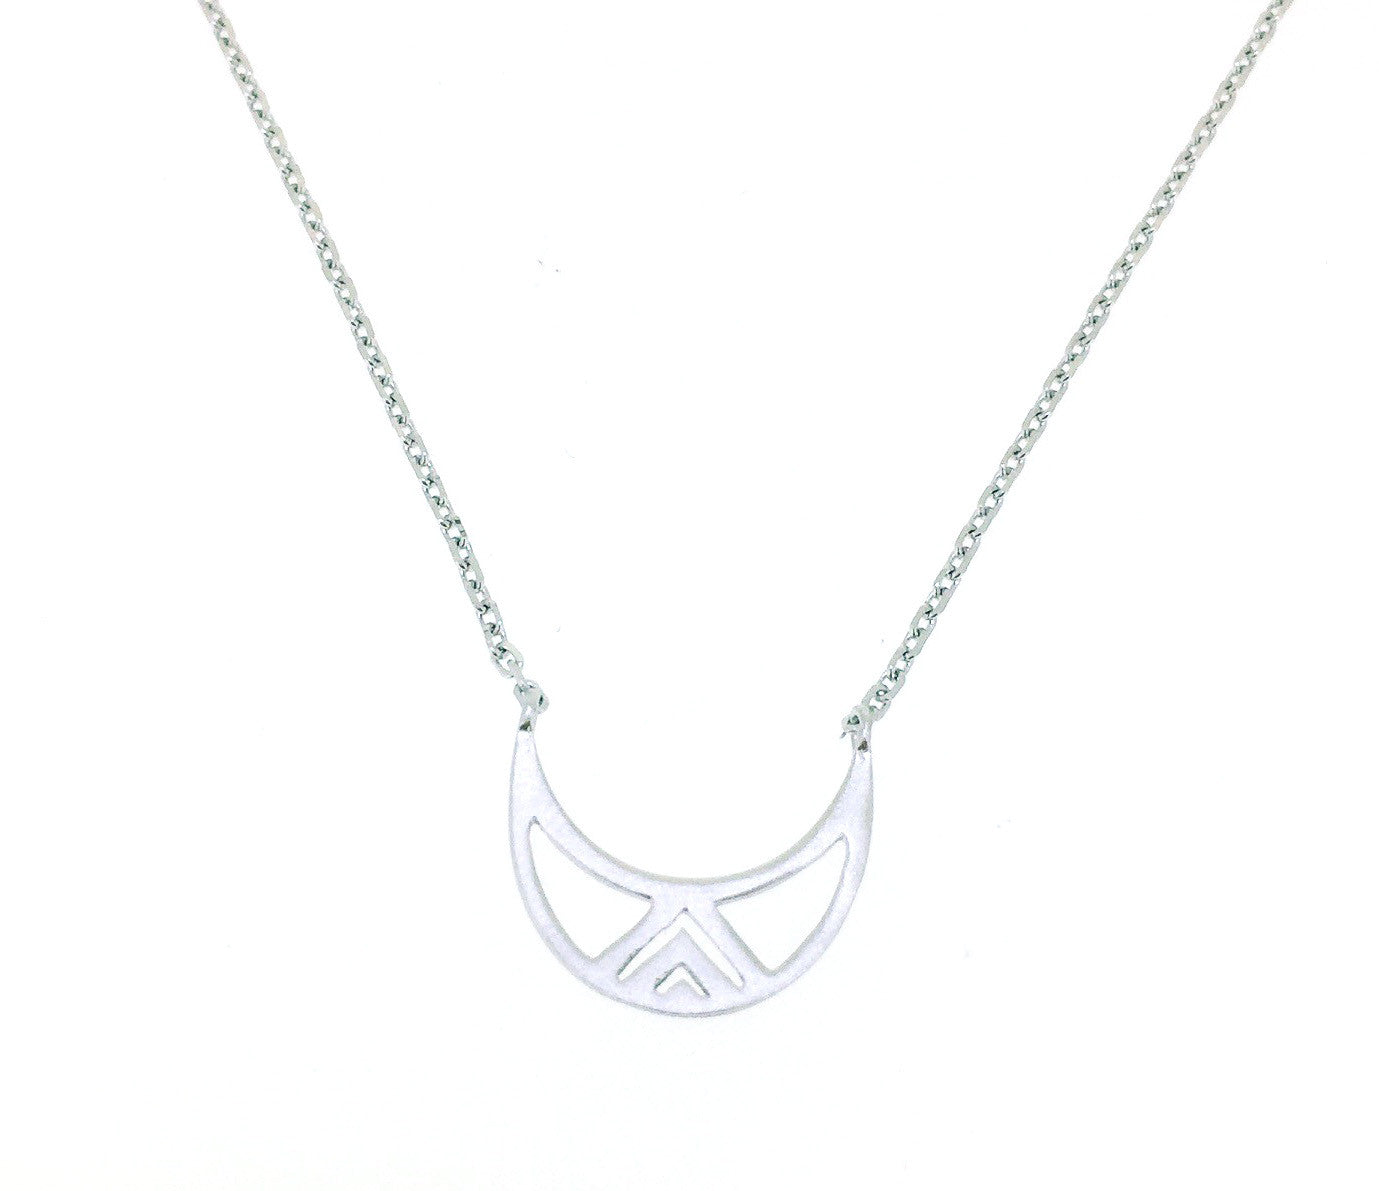 Sterling silver necklace with crescent moon pendant - Silver (Rhodium Plated)